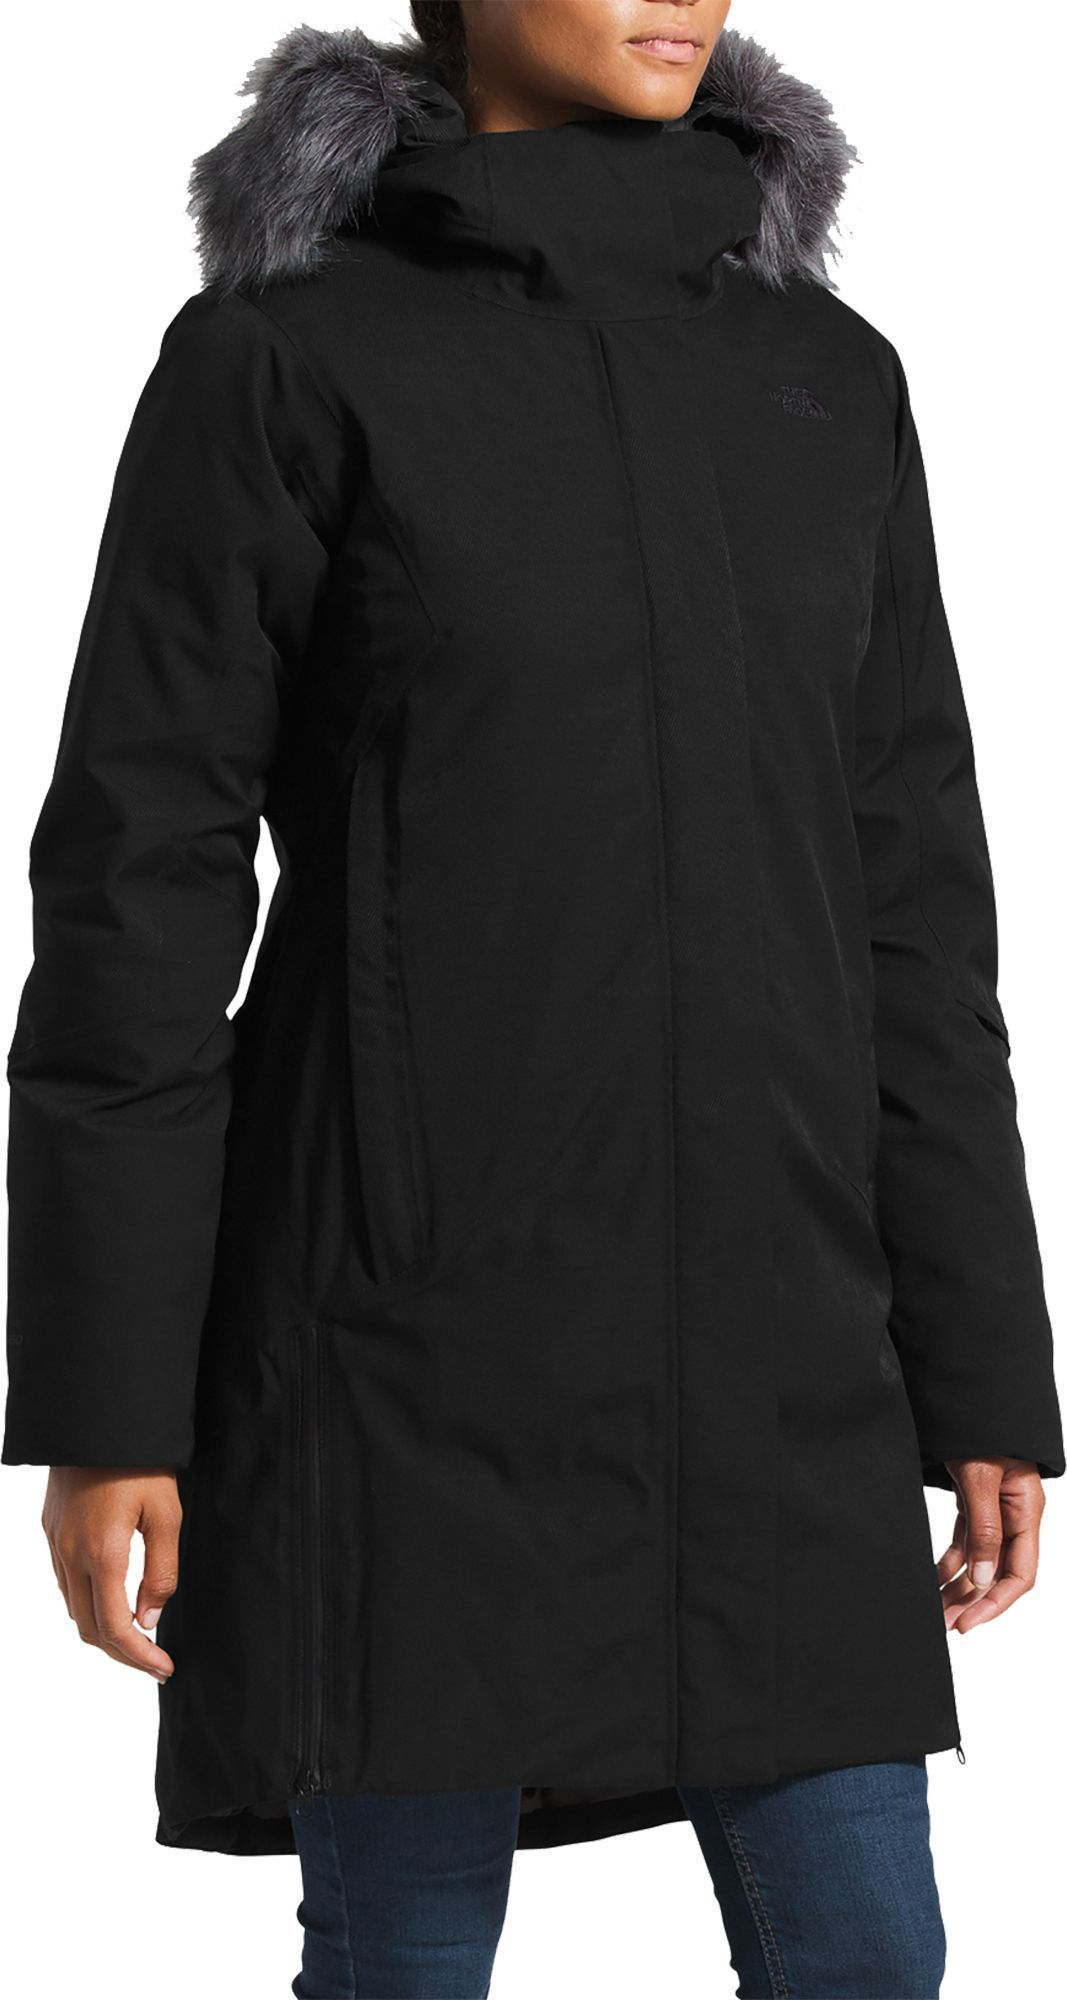 7c2459c7e The North Face Women's Defdown Parka GTX   Products   North face ...